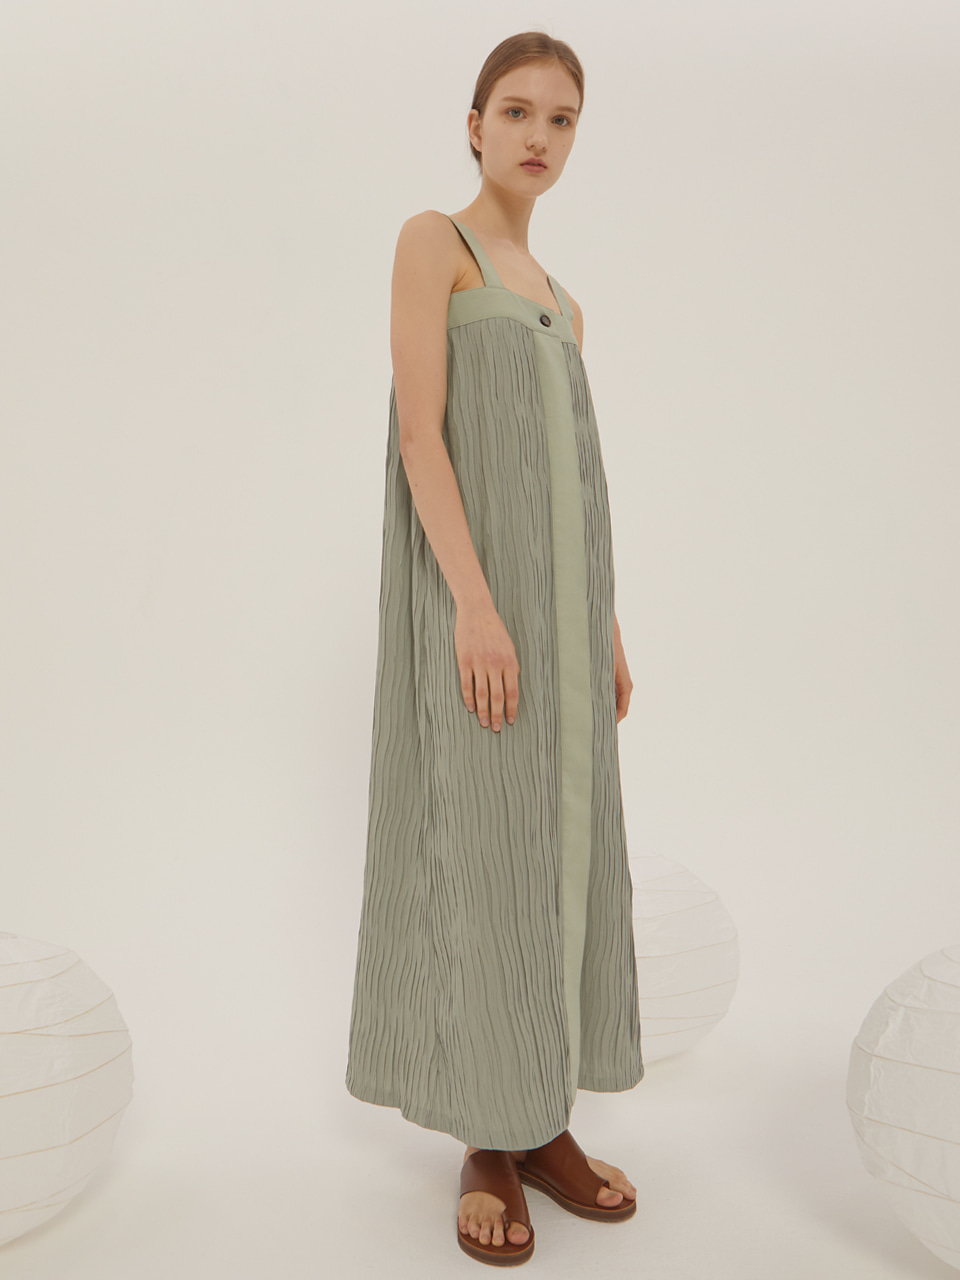 WRINKLE LONG DRESS_Olive / Out of Stock